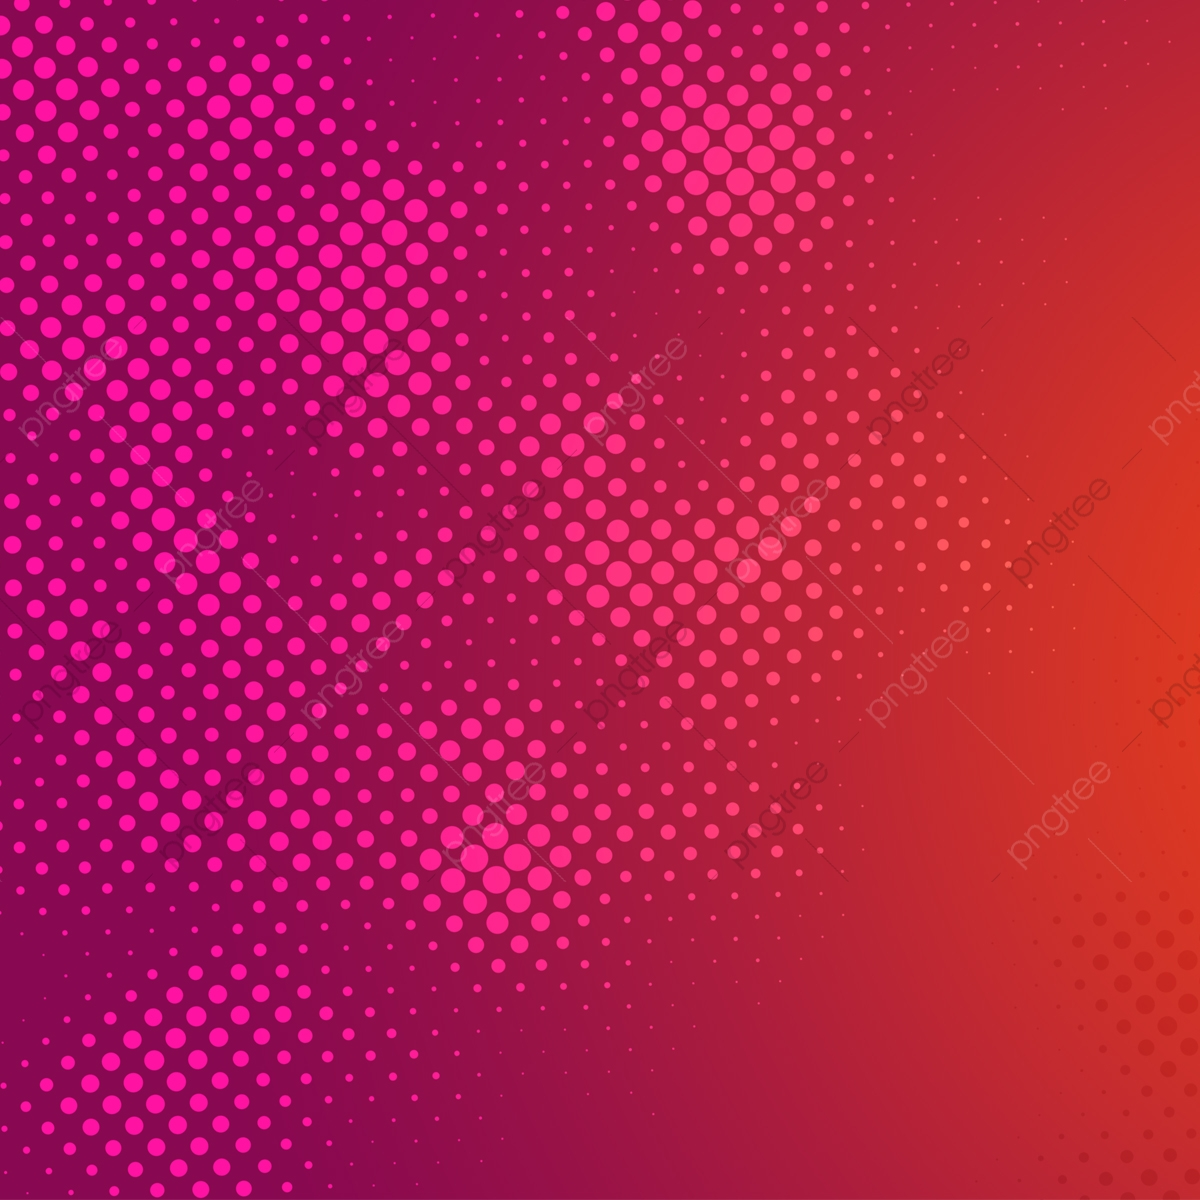 Halftone Dots Graphic Elements Background, Halftone, Dots